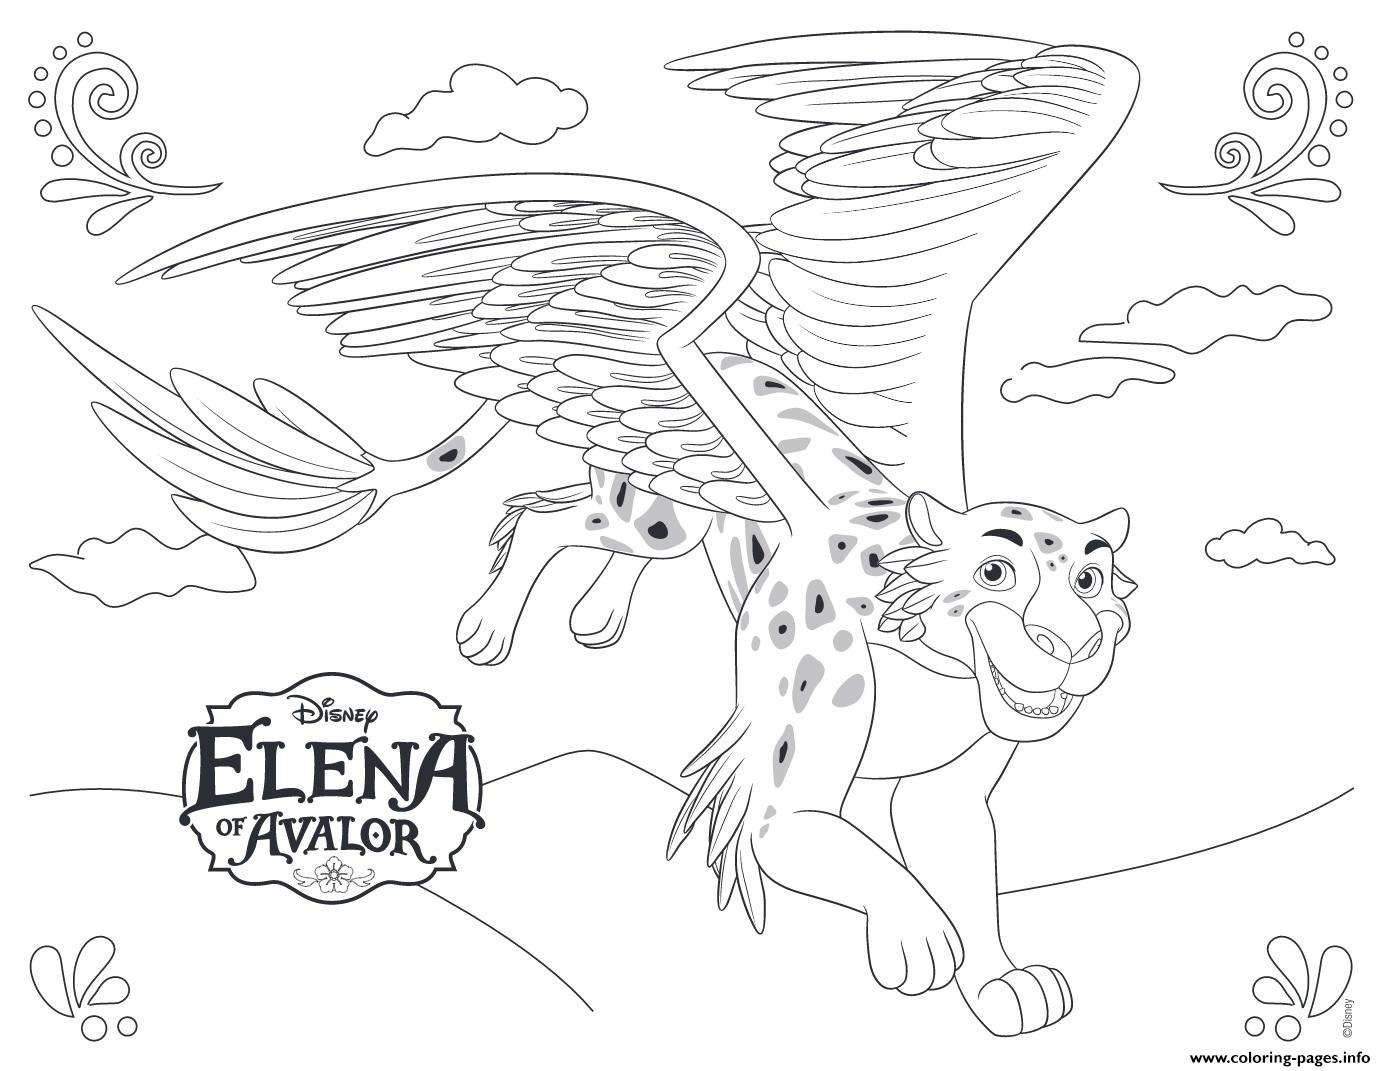 Elena Of Avalor Jaquin Disney Princess coloring pages